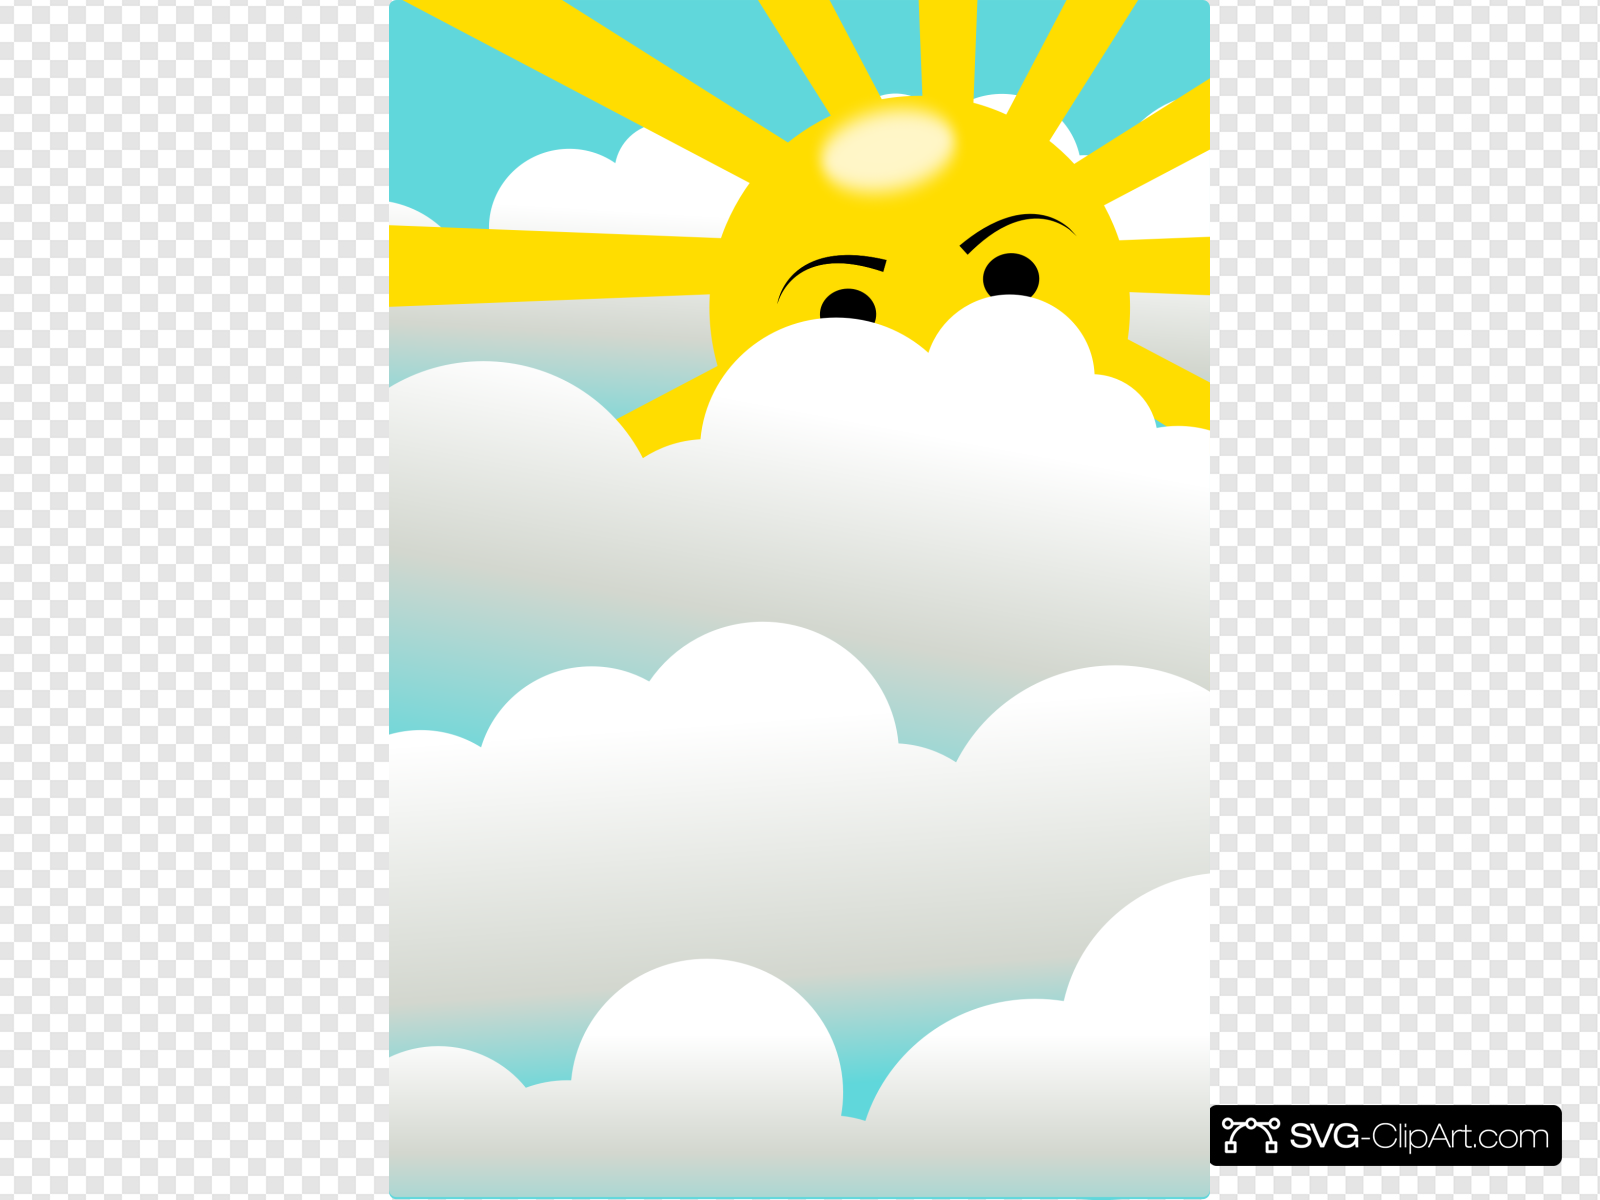 Clouds With Hidden Sun Clip art, Icon and SVG.